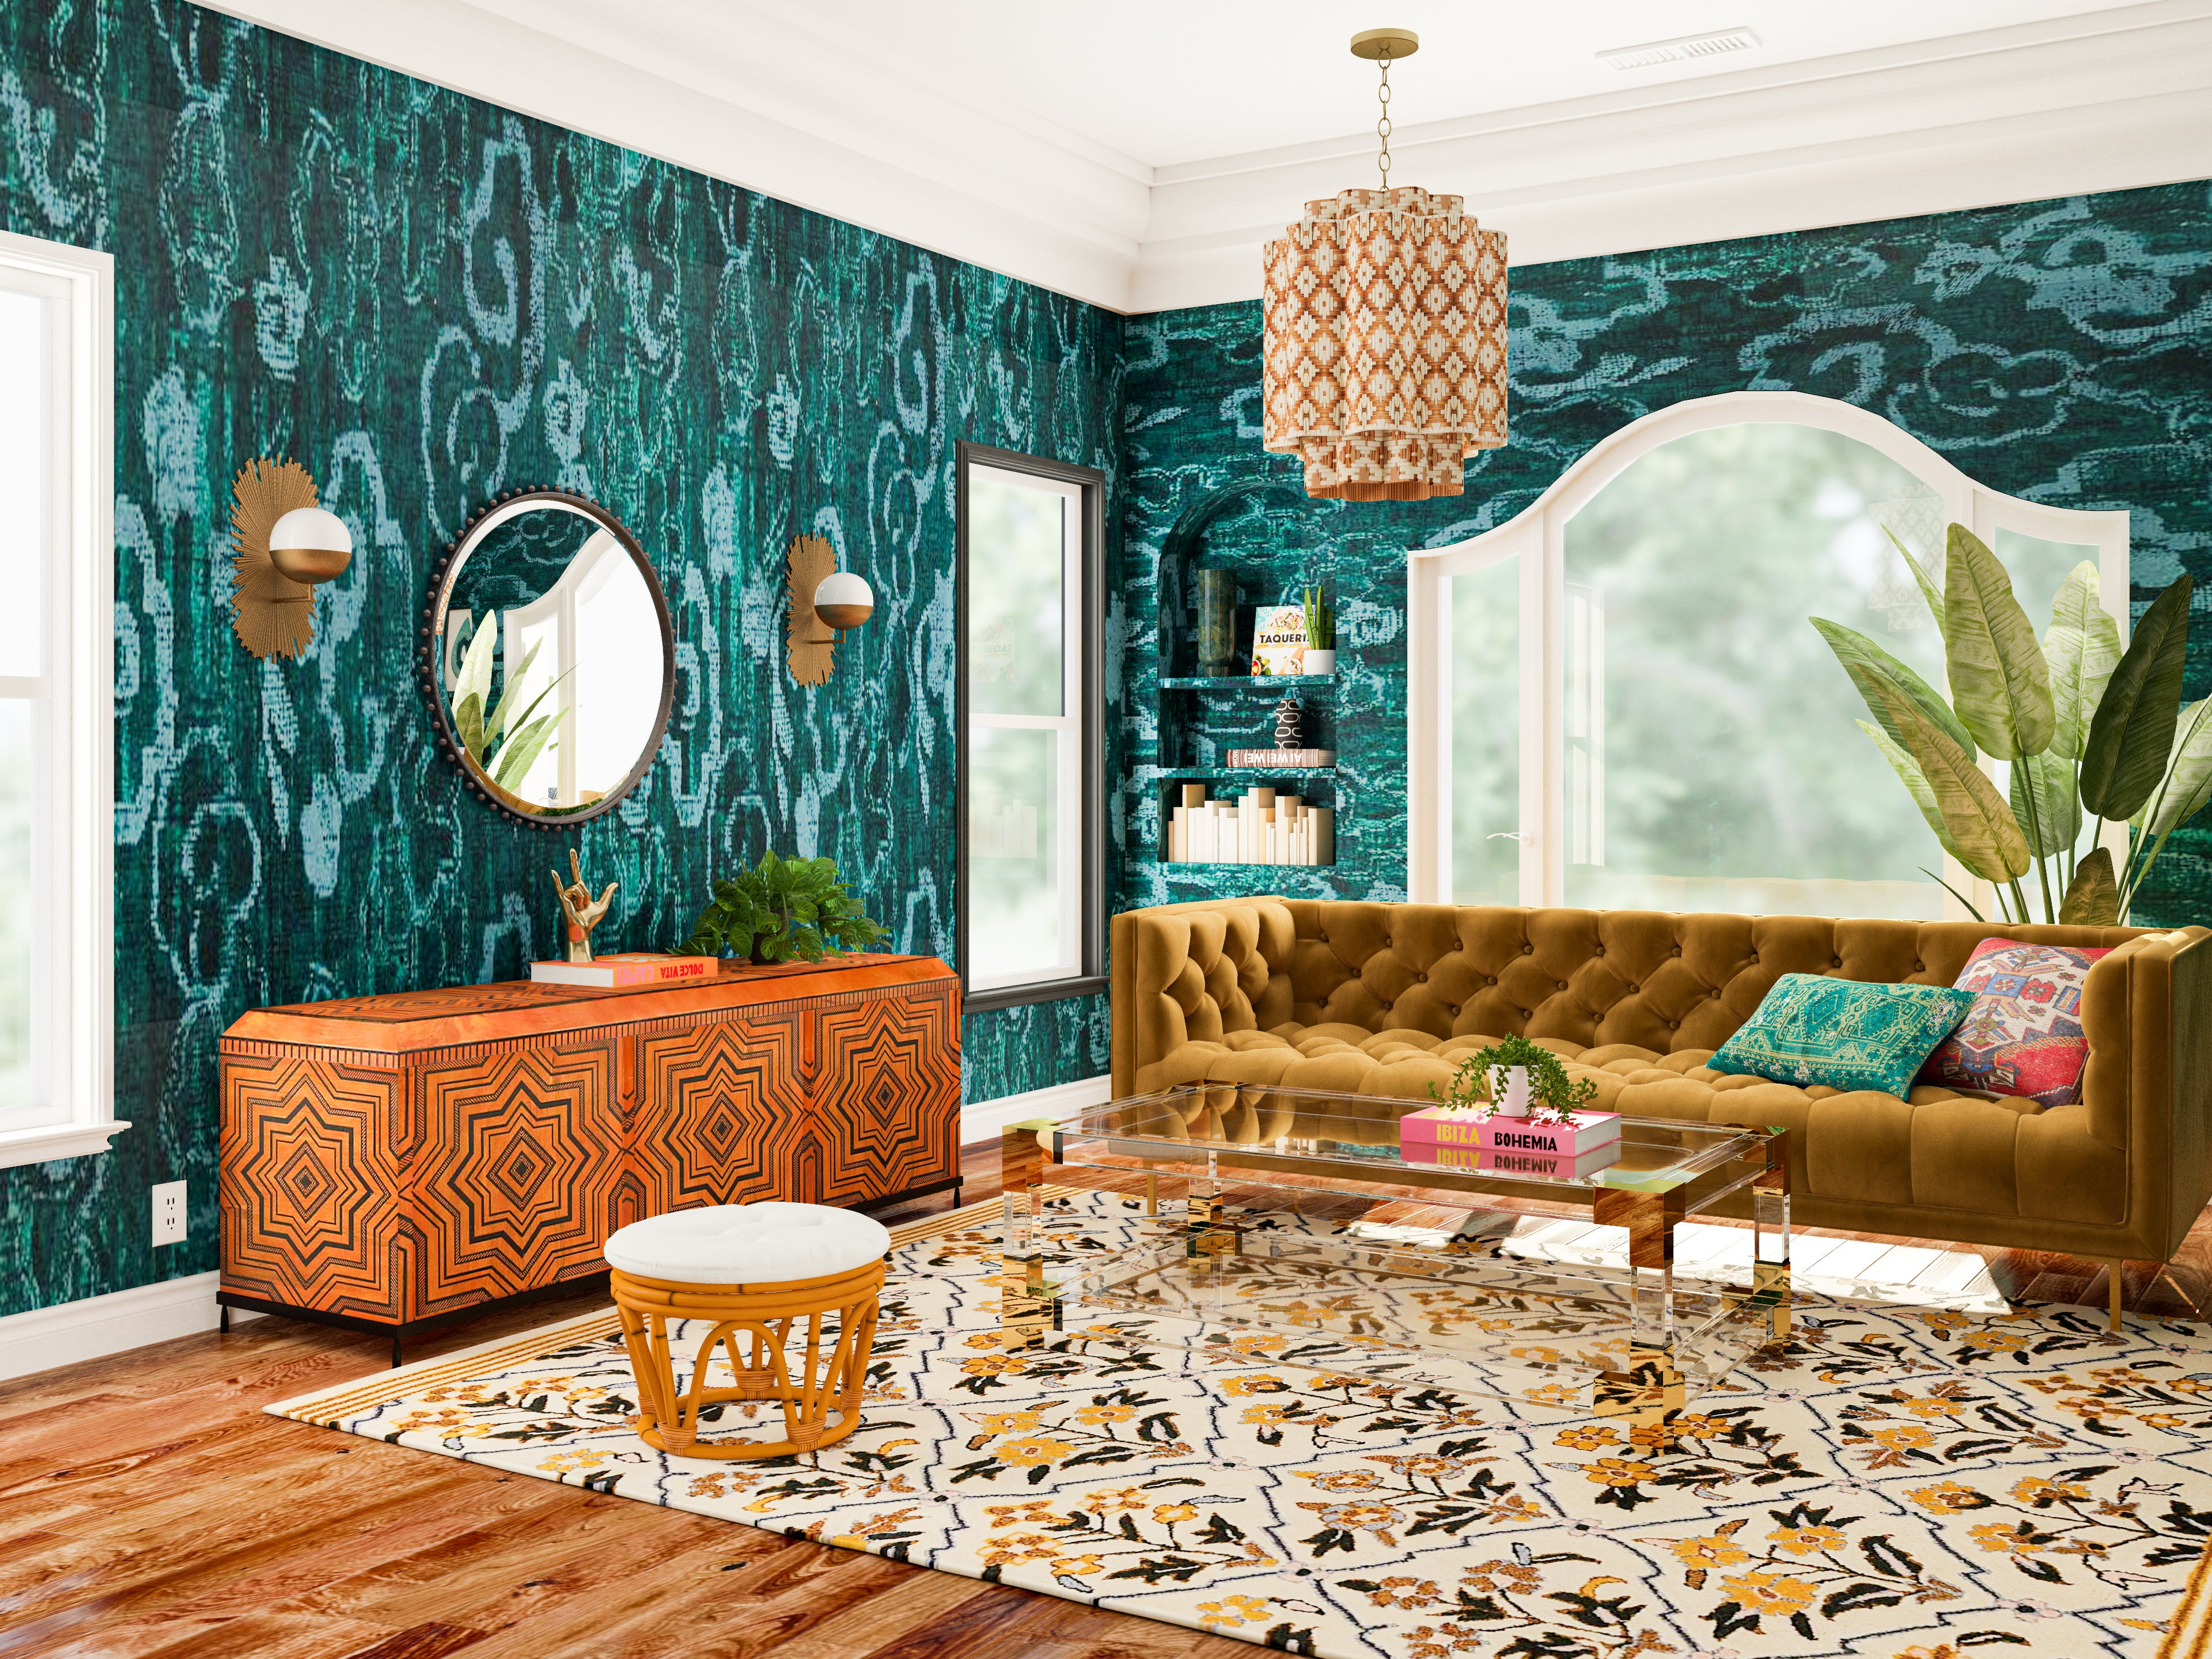 The Eclectic Boho Lovers Unite